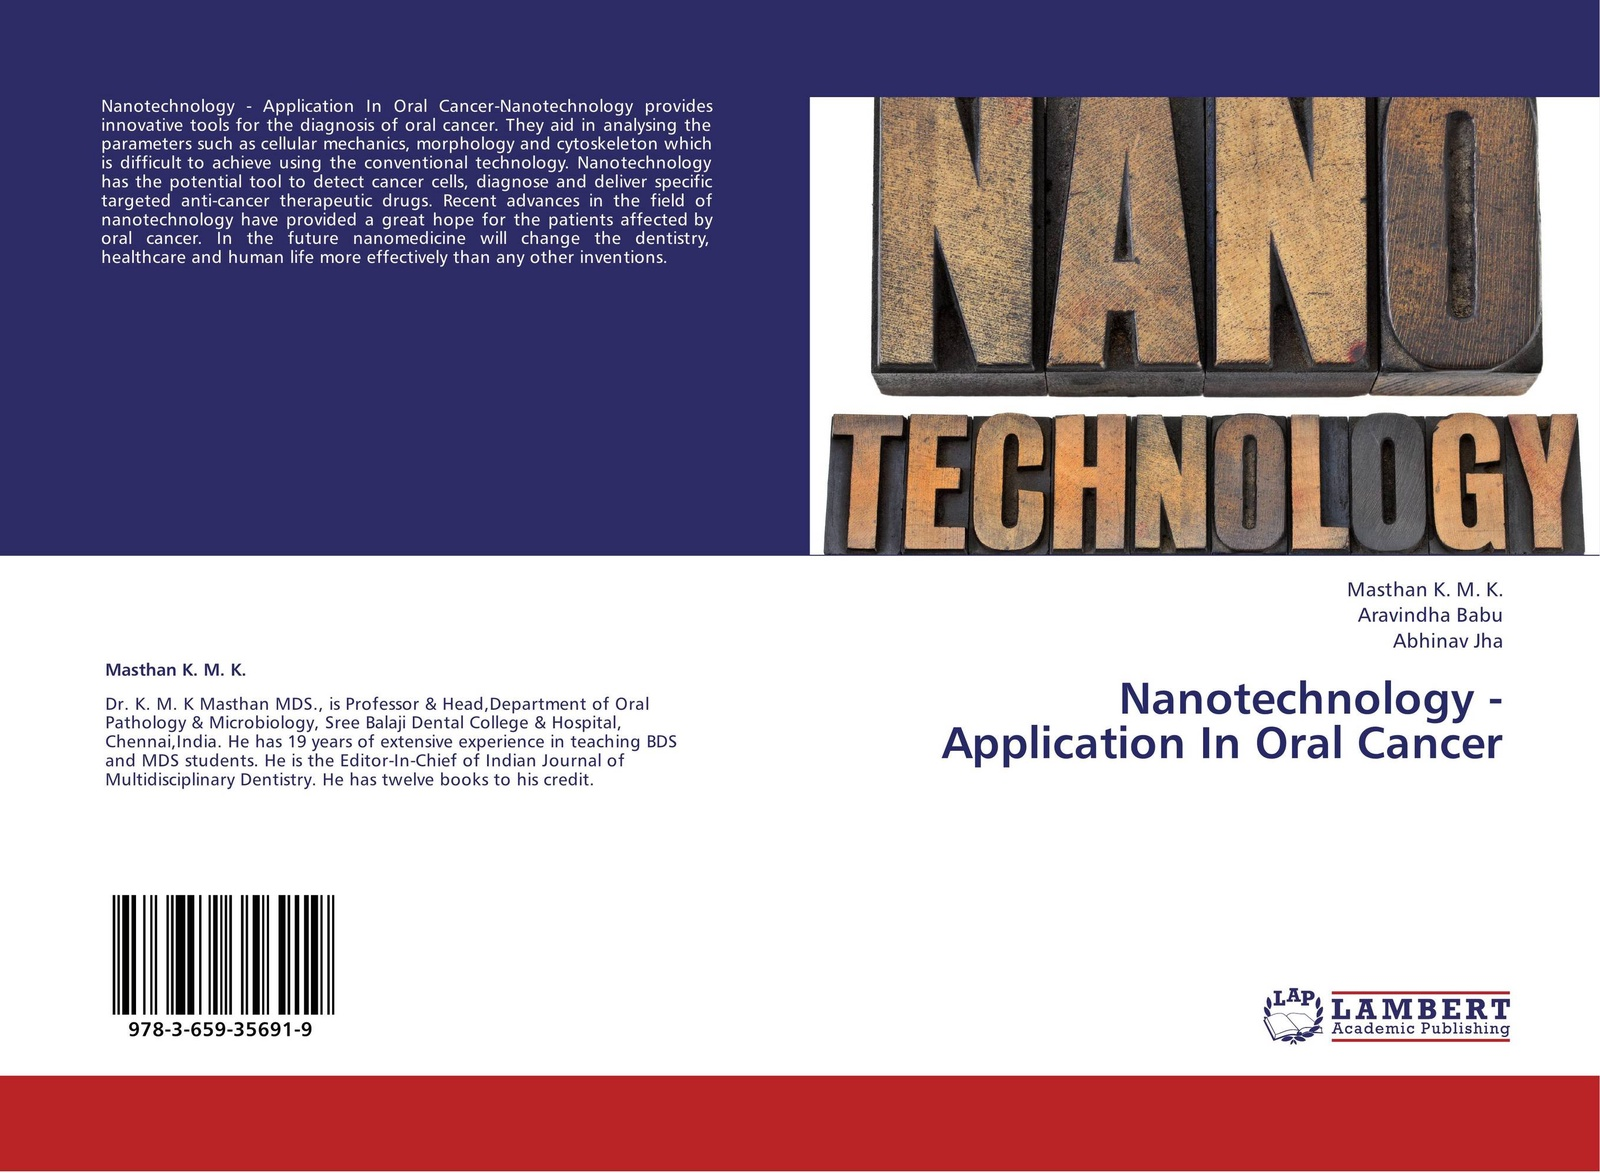 Masthan K. M. K.,Aravindha Babu and Abhinav Jha Nanotechnology -Application In Oral Cancer willem norde nanotechnology in the agri food sector